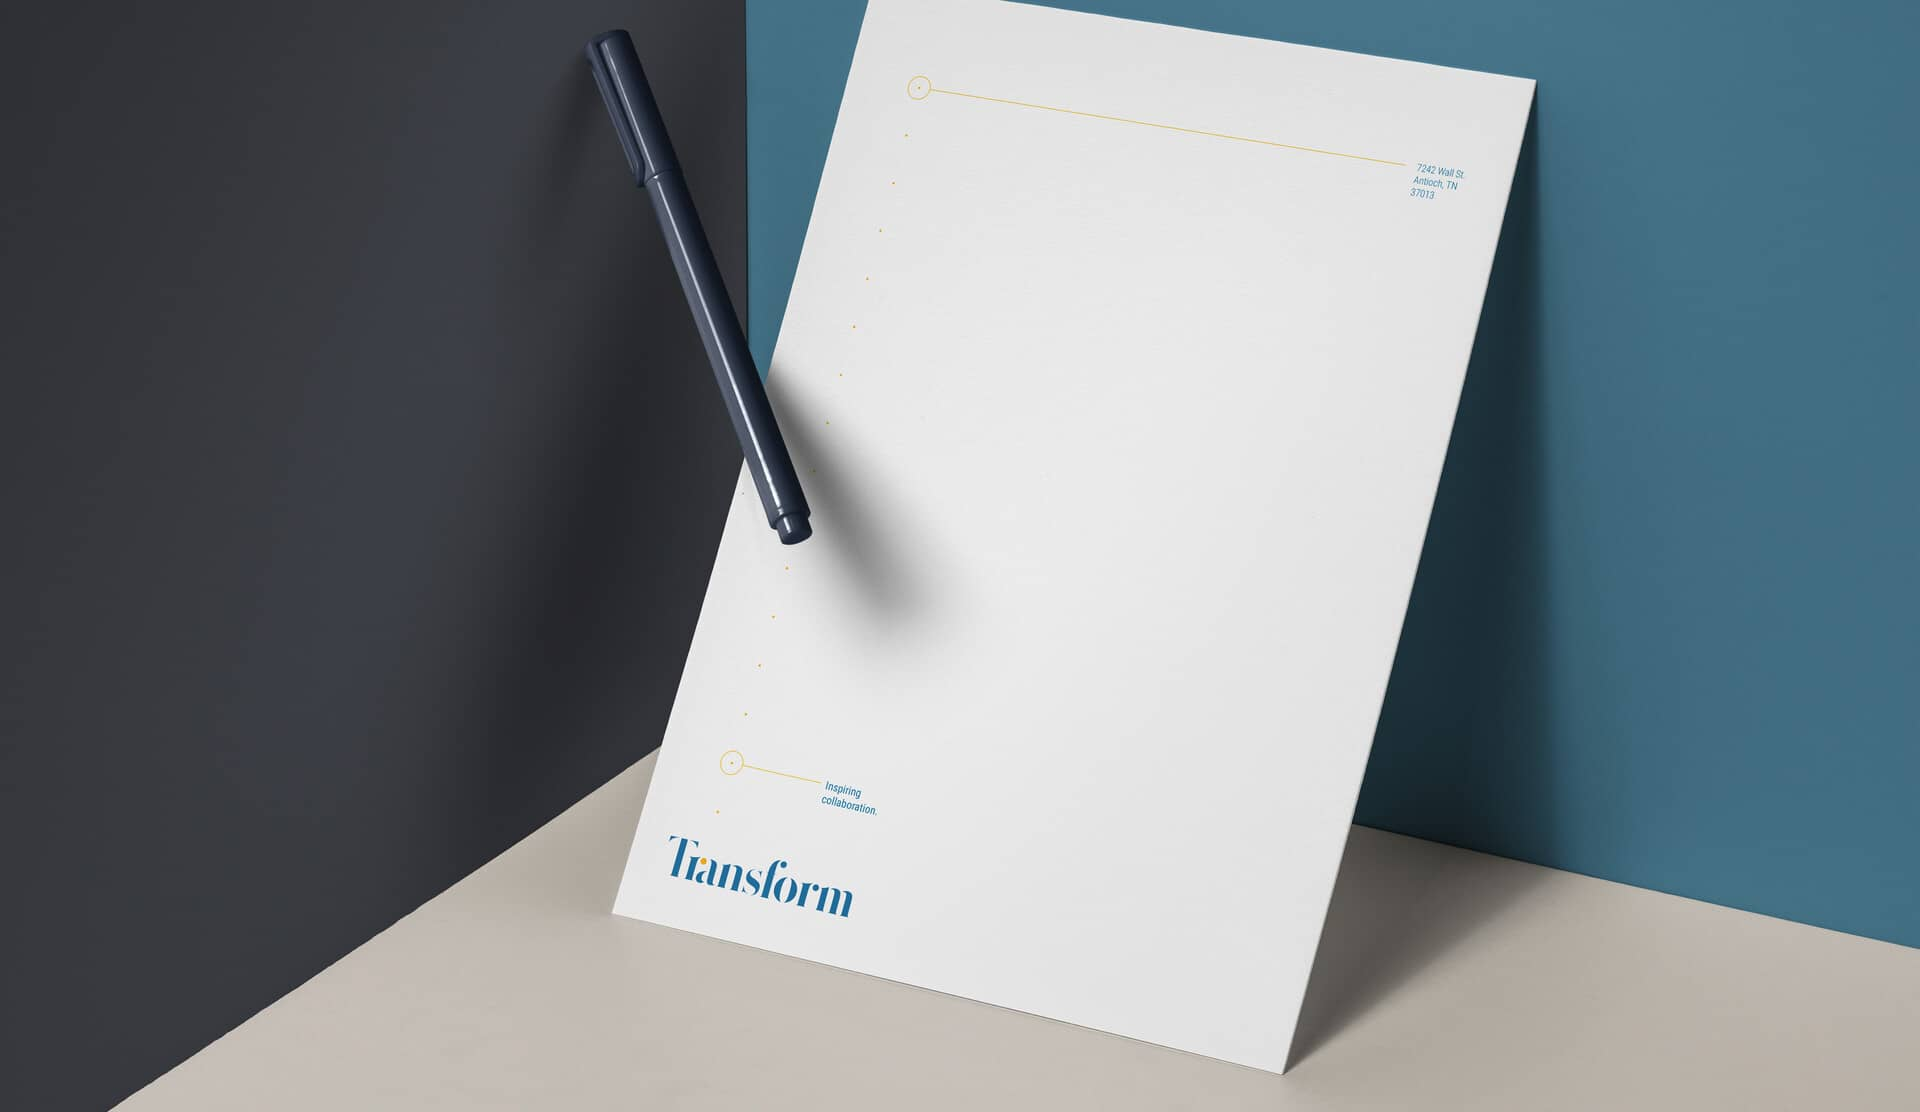 Transform letterhead design on thick paper resting on a blue background